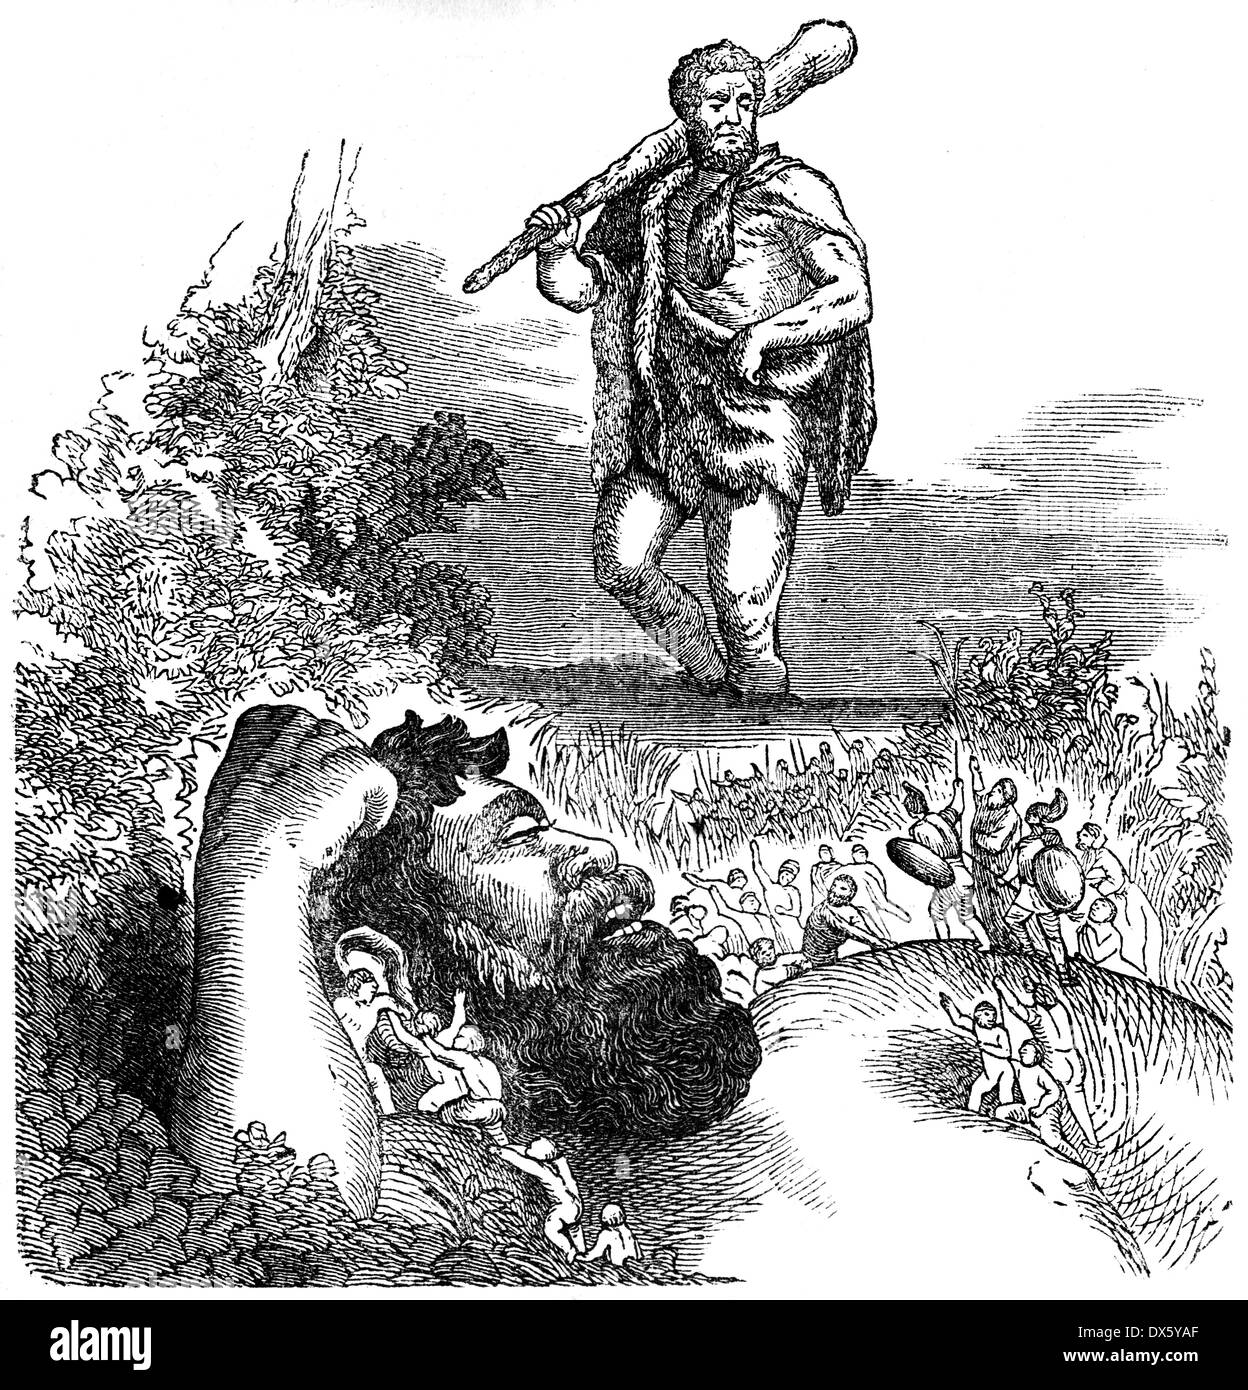 Heracles and Pygmy, illustration from book dated 1878 - Stock Image